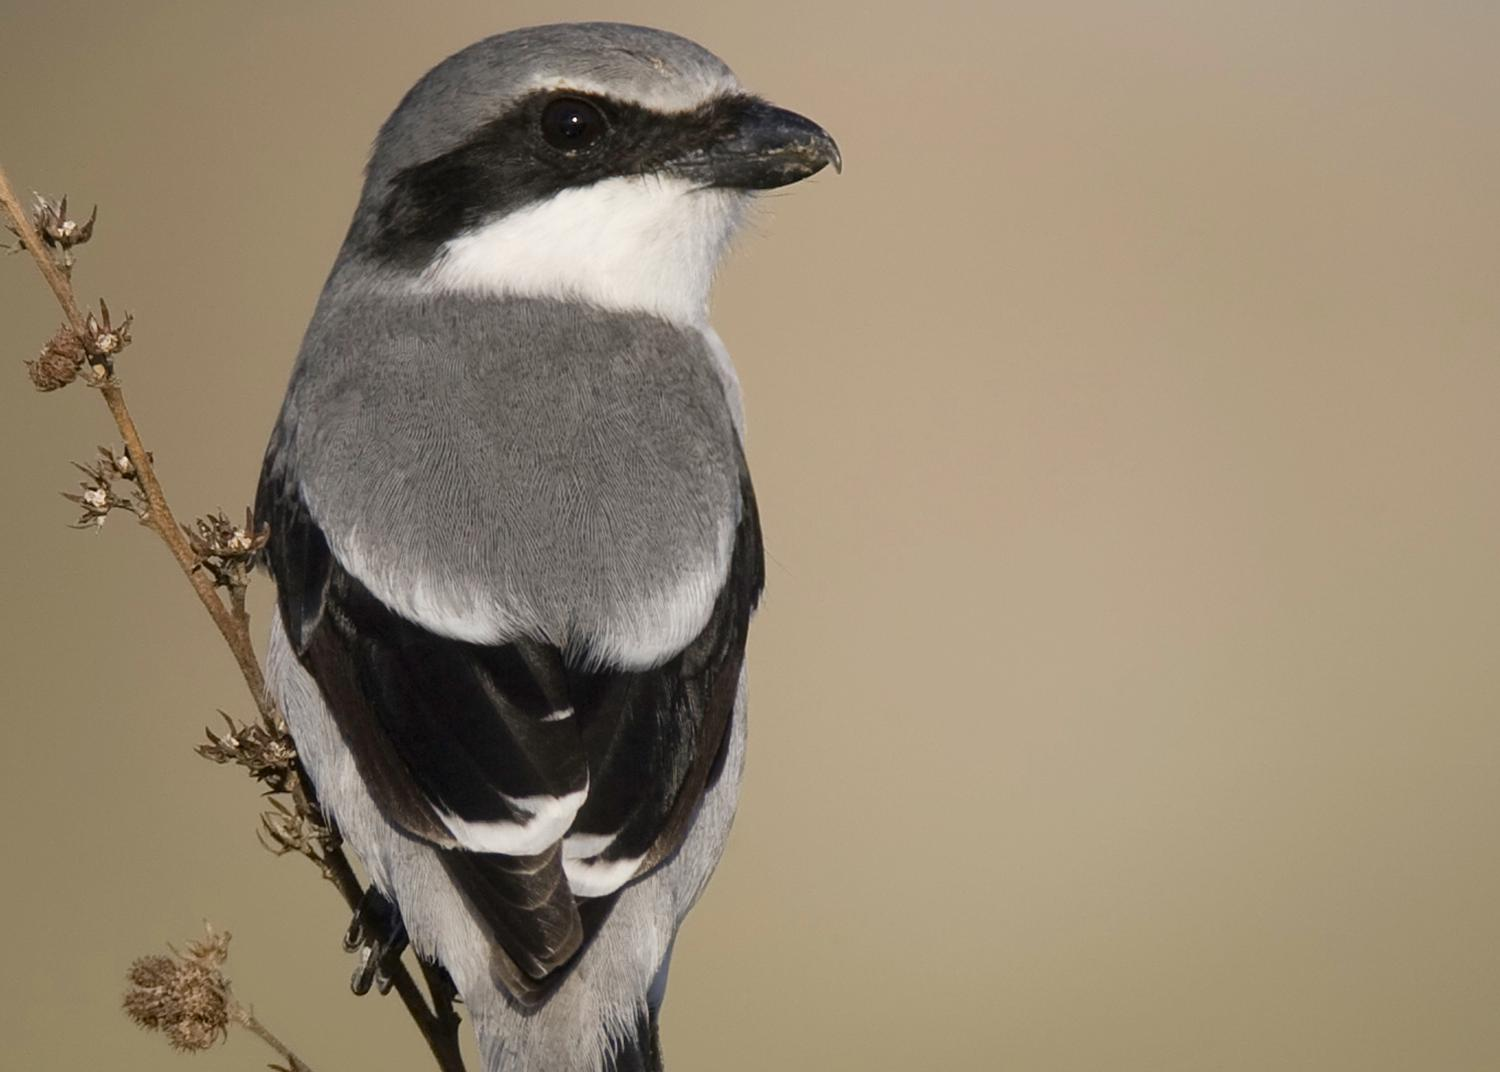 A bird with black and gray feathers perches on a stem.